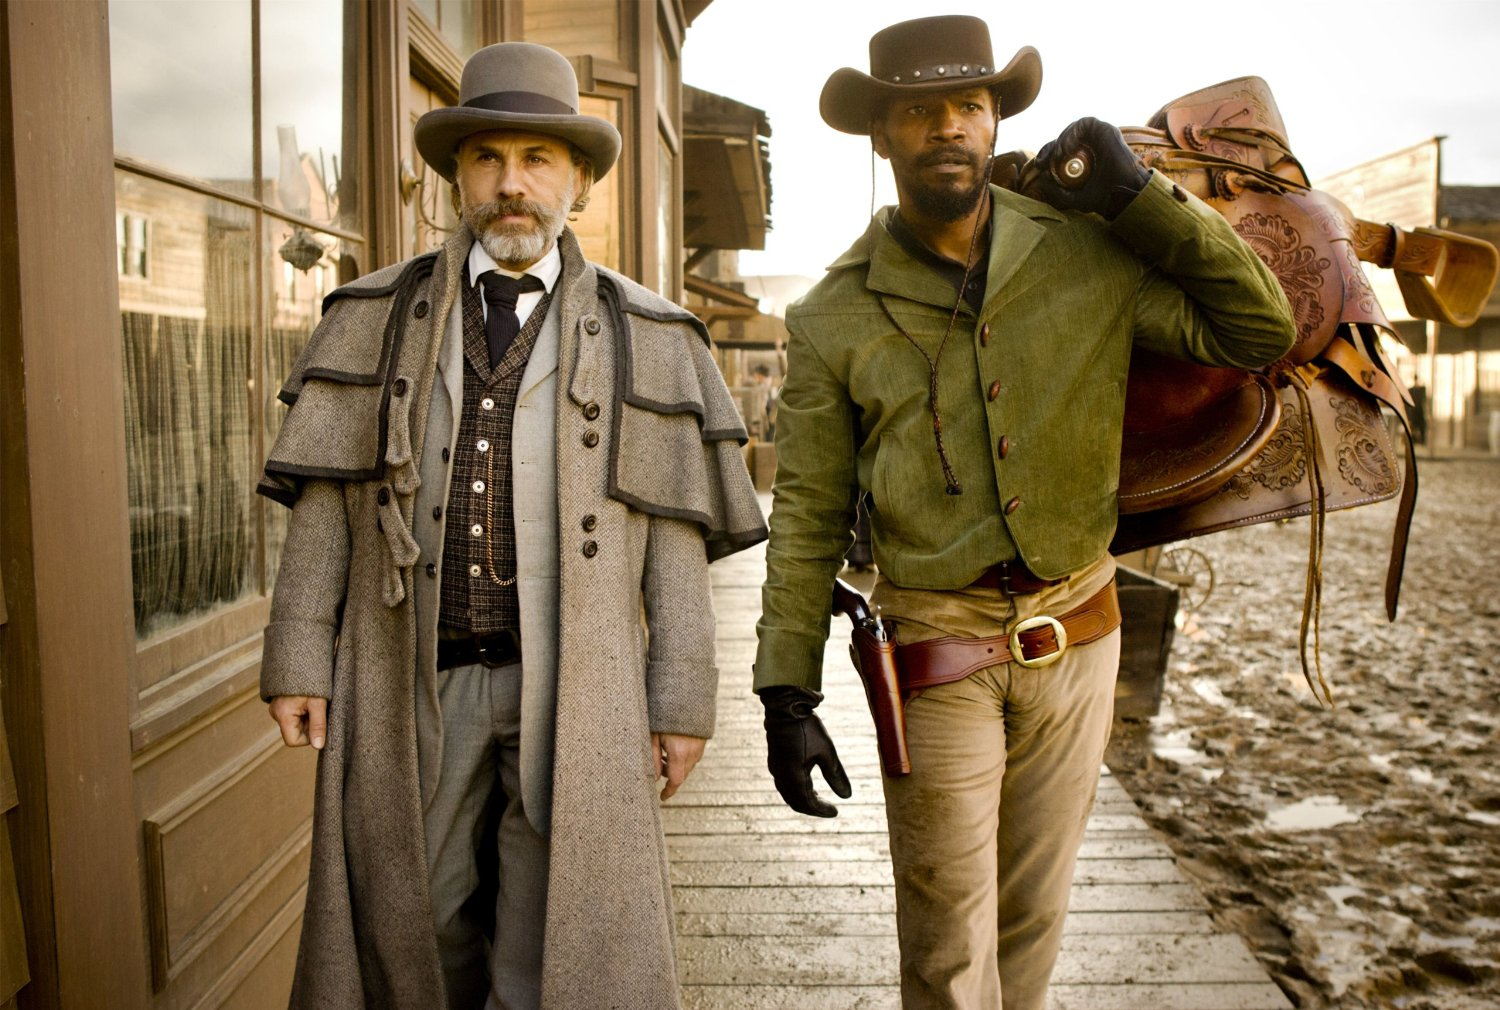 django unchained movie film white savior